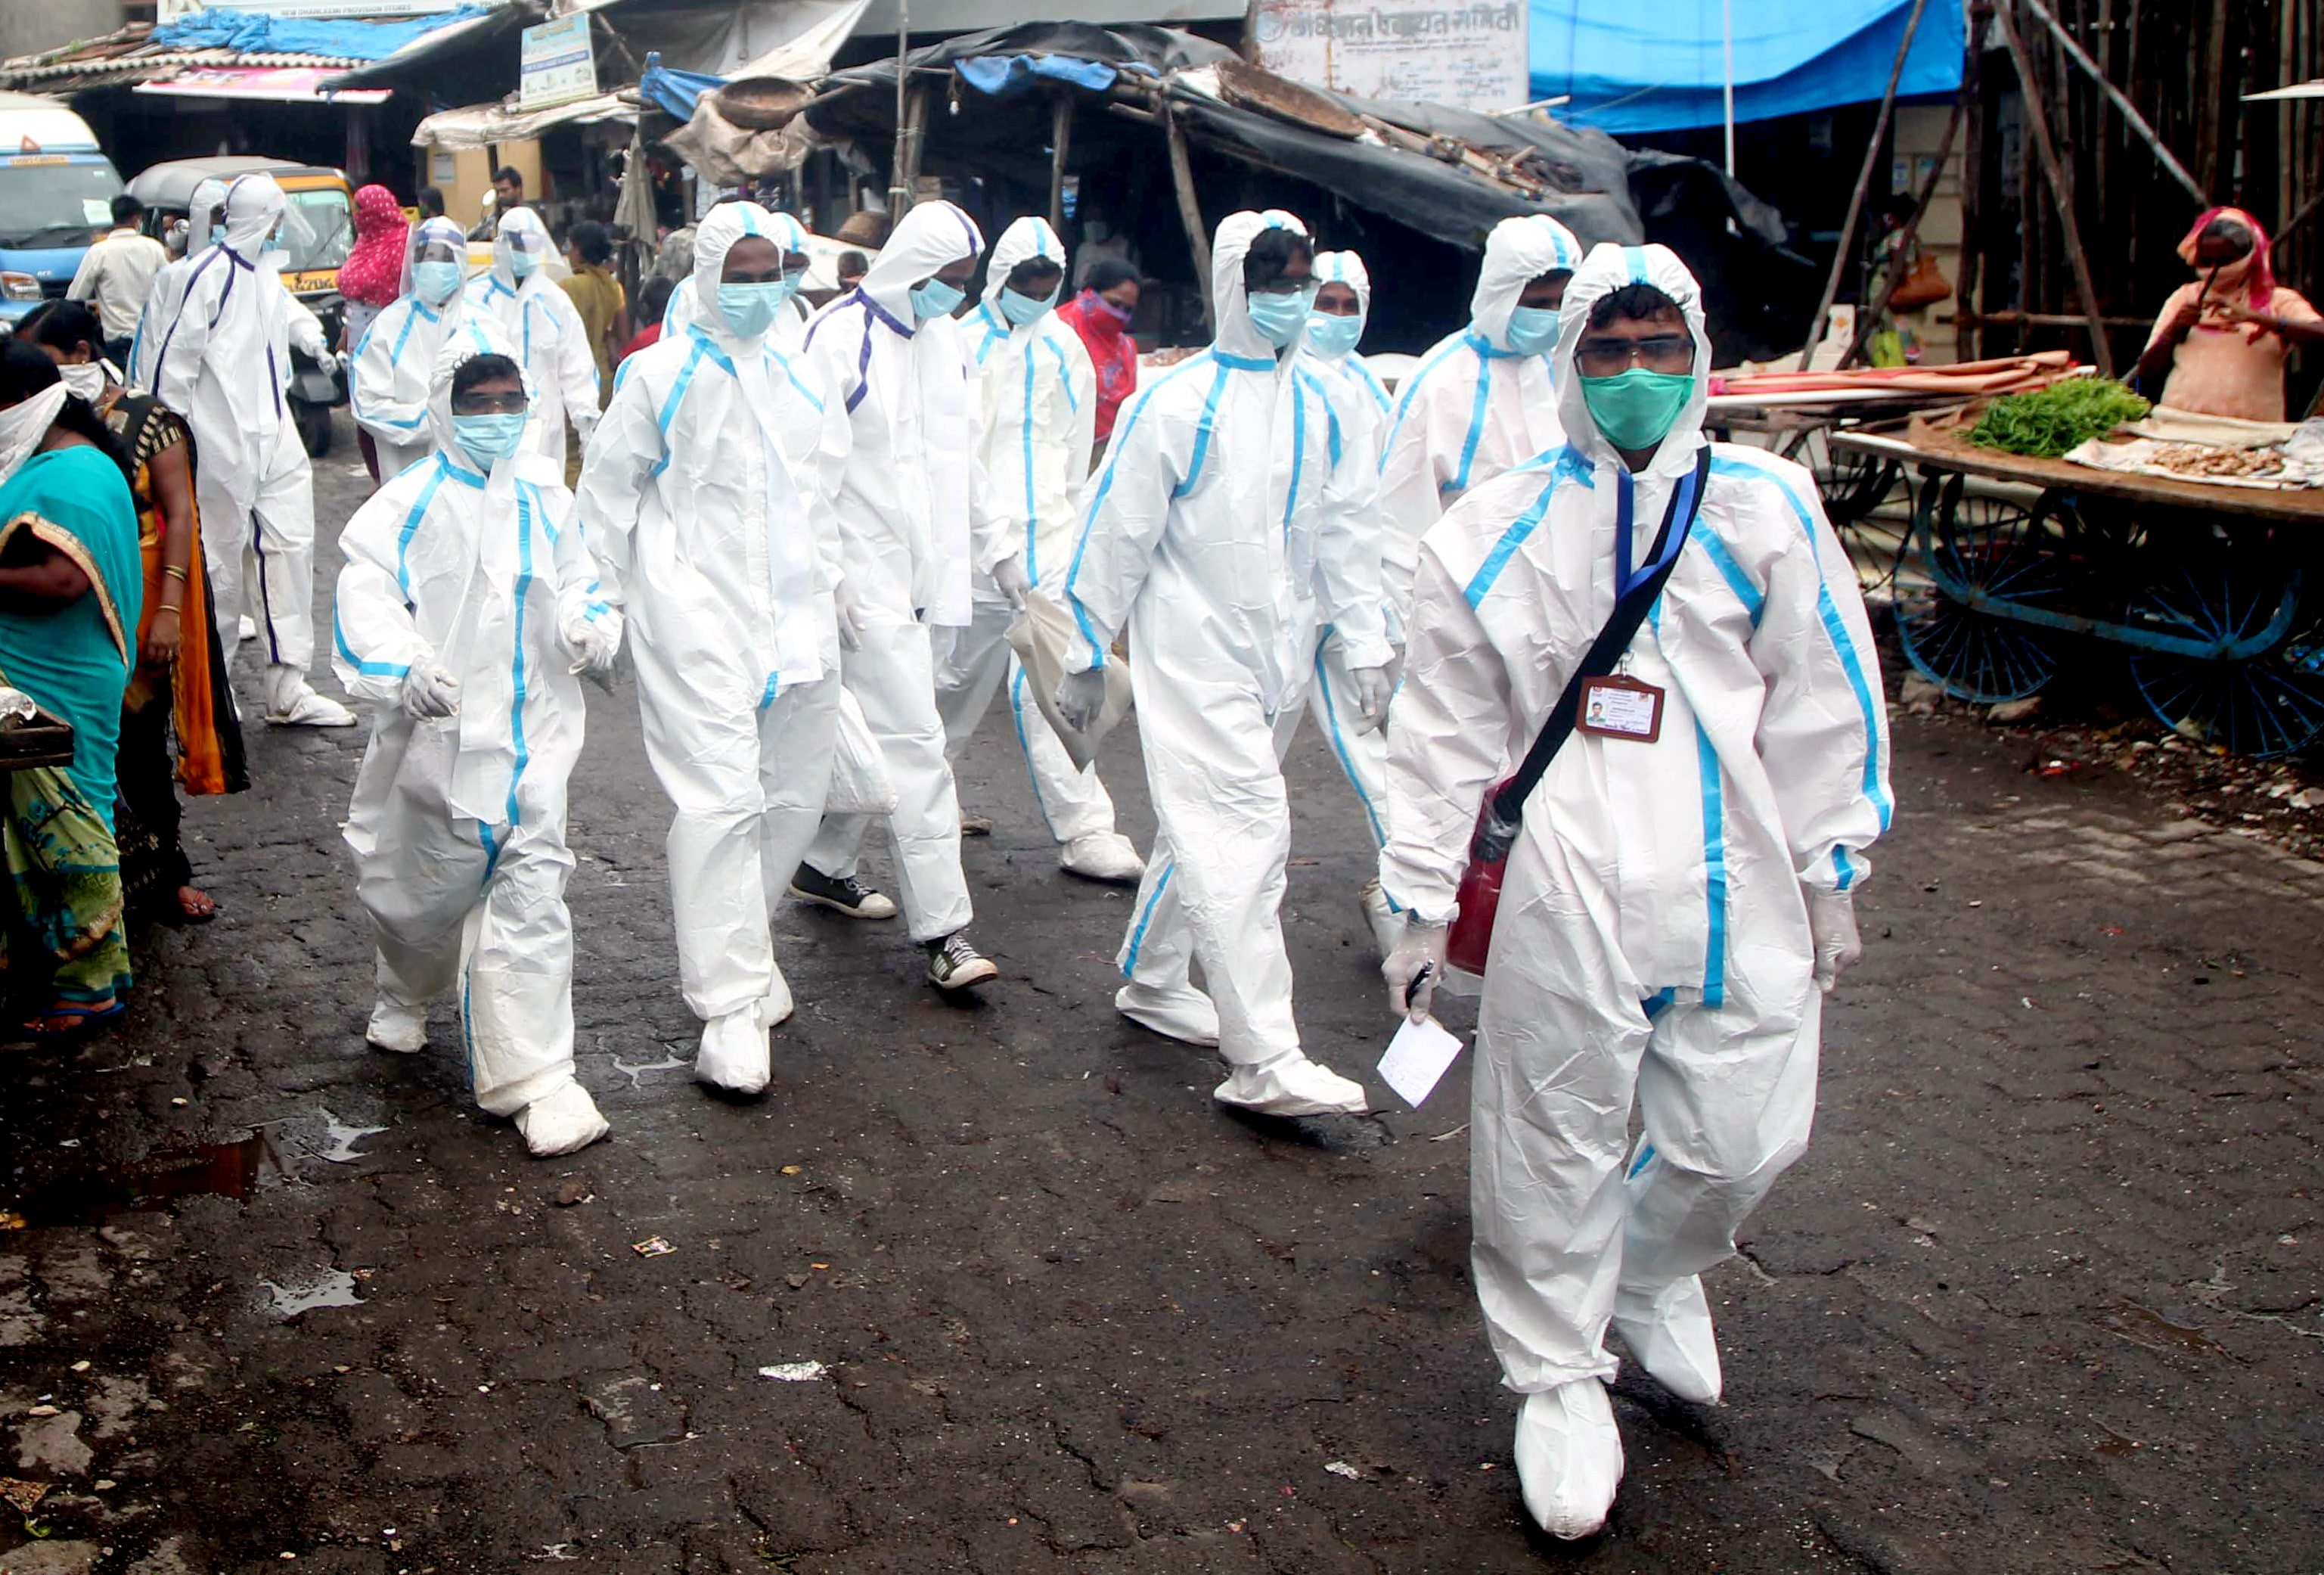 Health workers wearing PPE to carry out medical checkup of the residents of a 'containment zones' Ambujwadi slums area at Malad, a Covid-19 hotspot, in Mumbai.